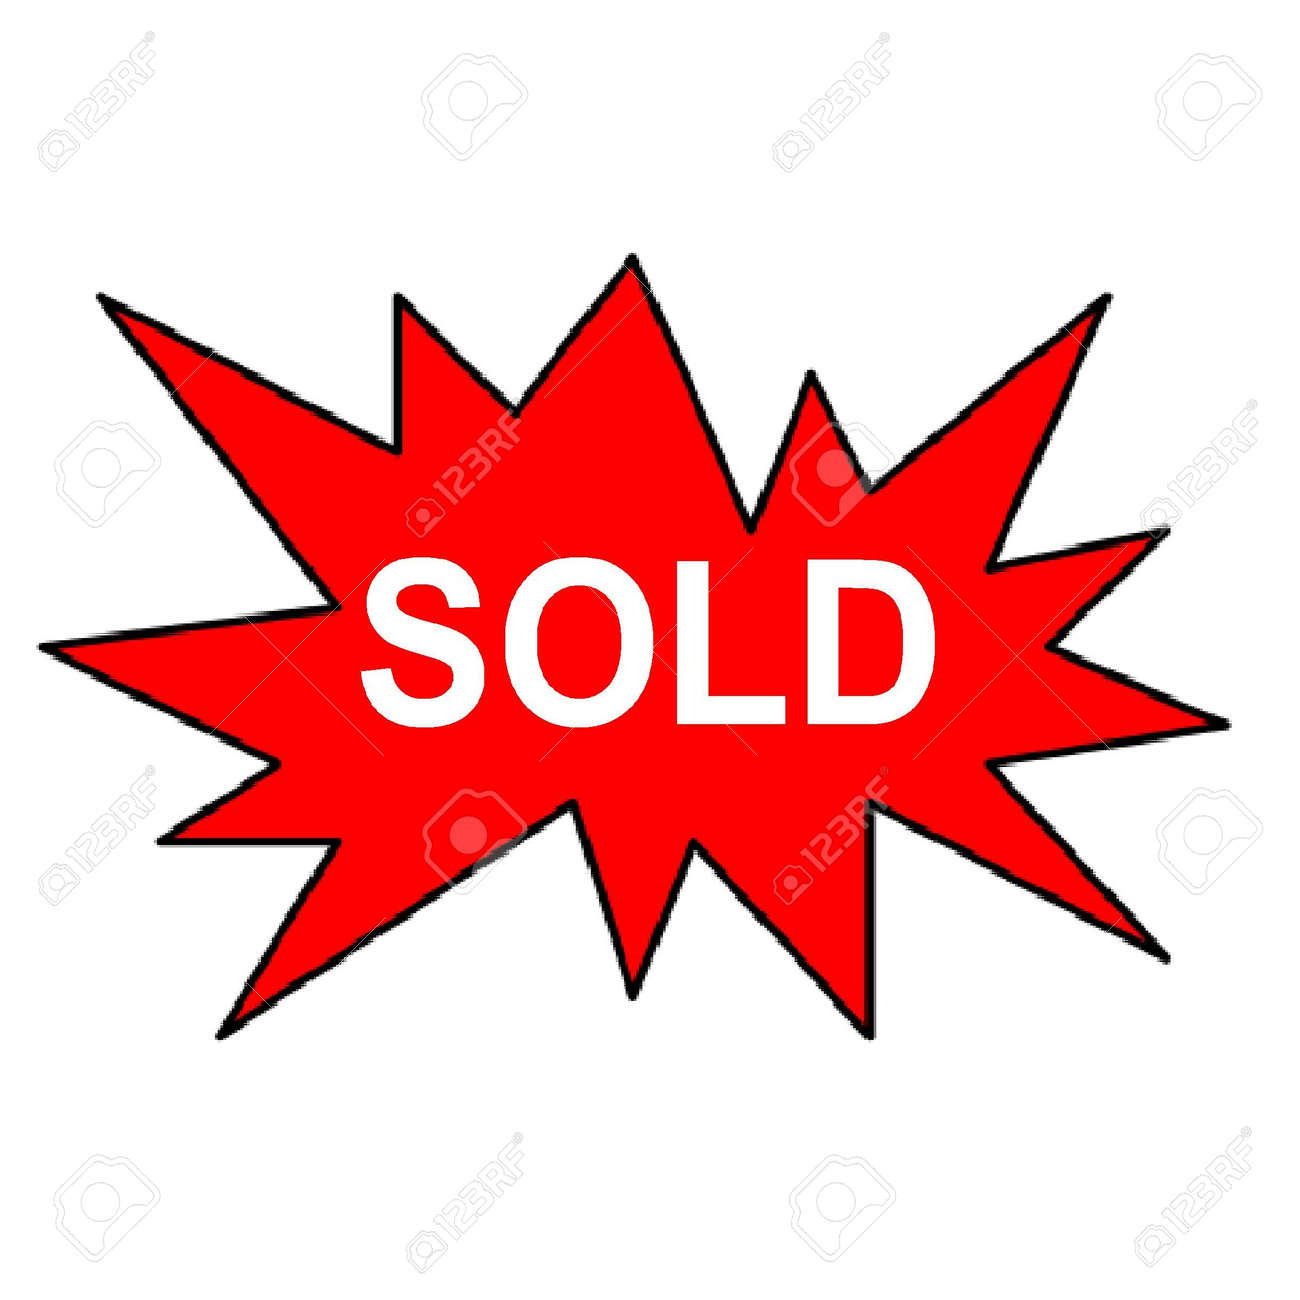 sold sign Stock Photo - 3581060